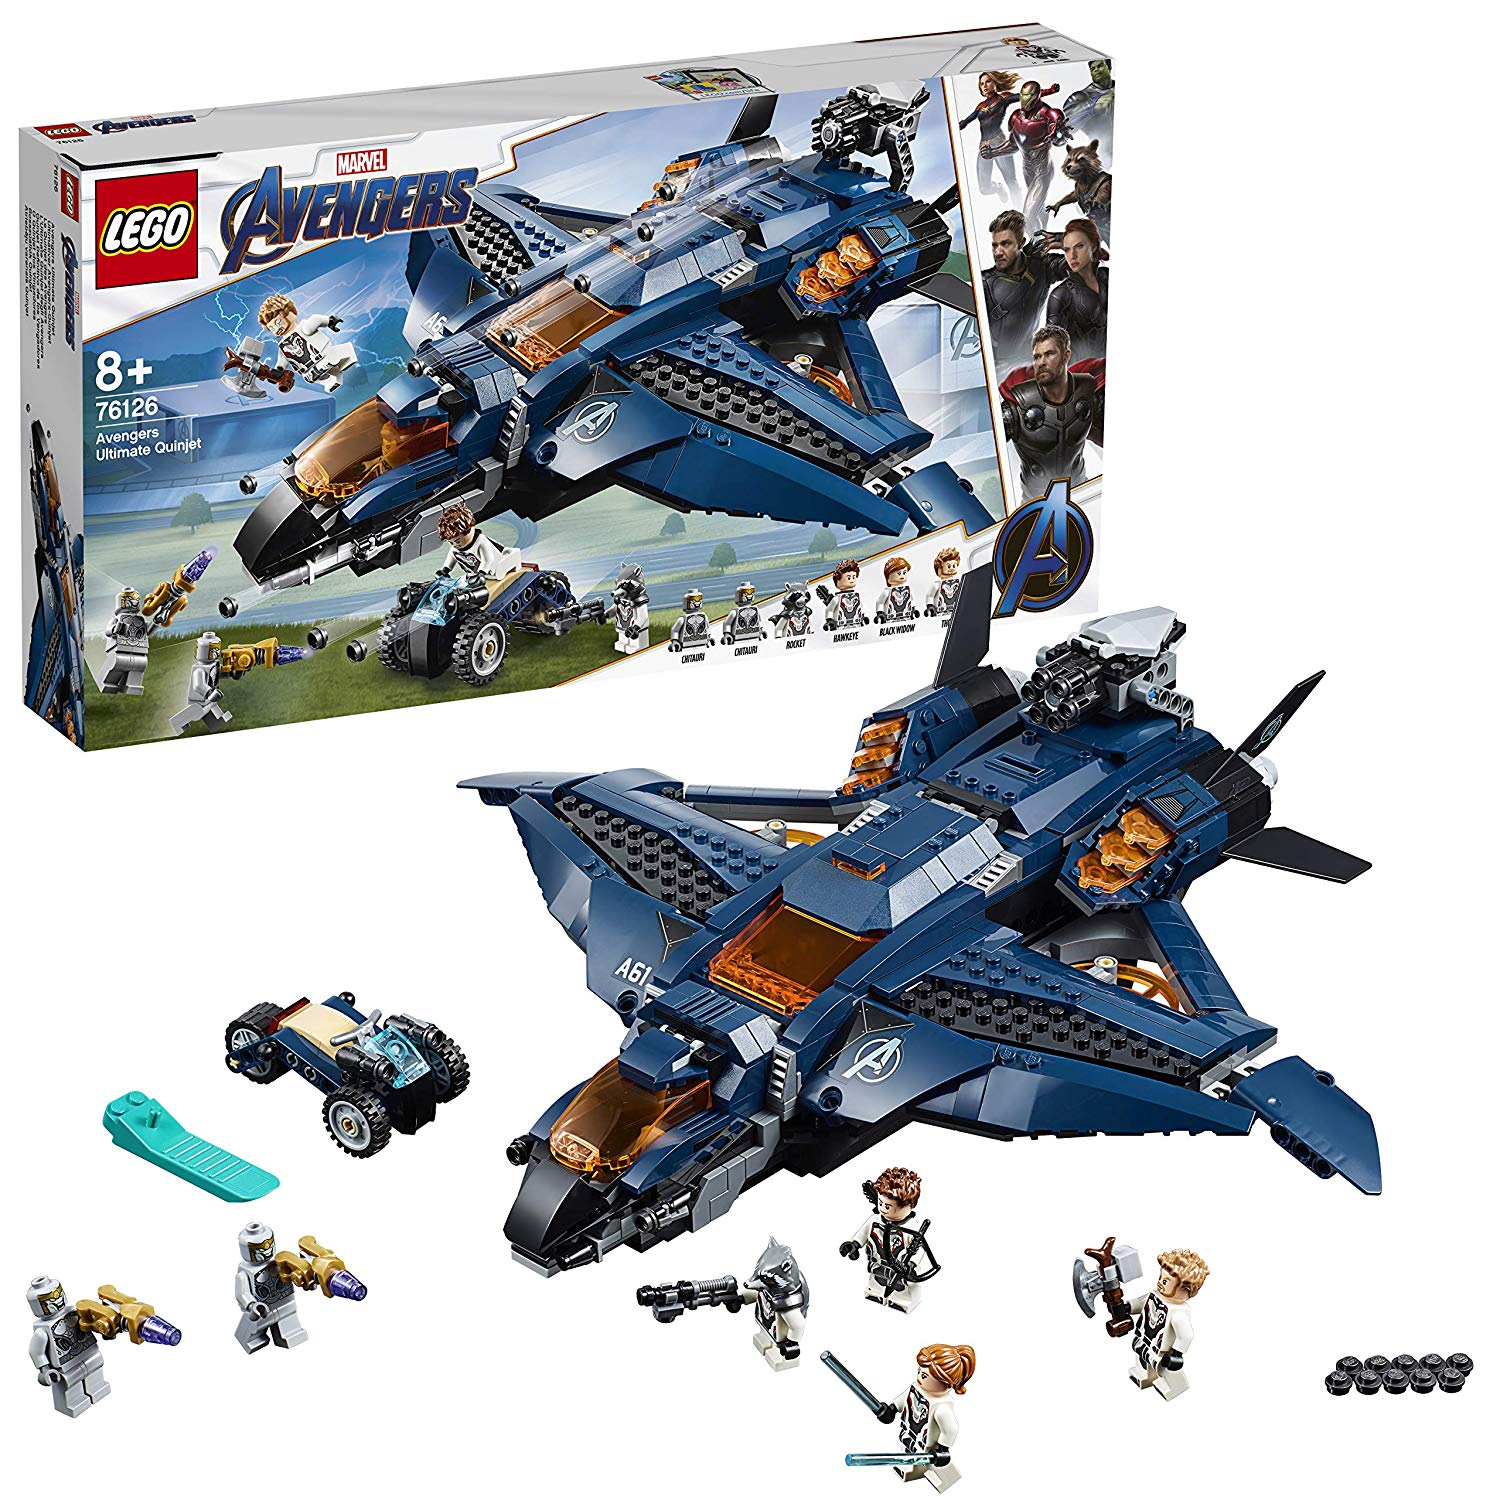 Avengers Endgame Ultimate Quinjet by Lego